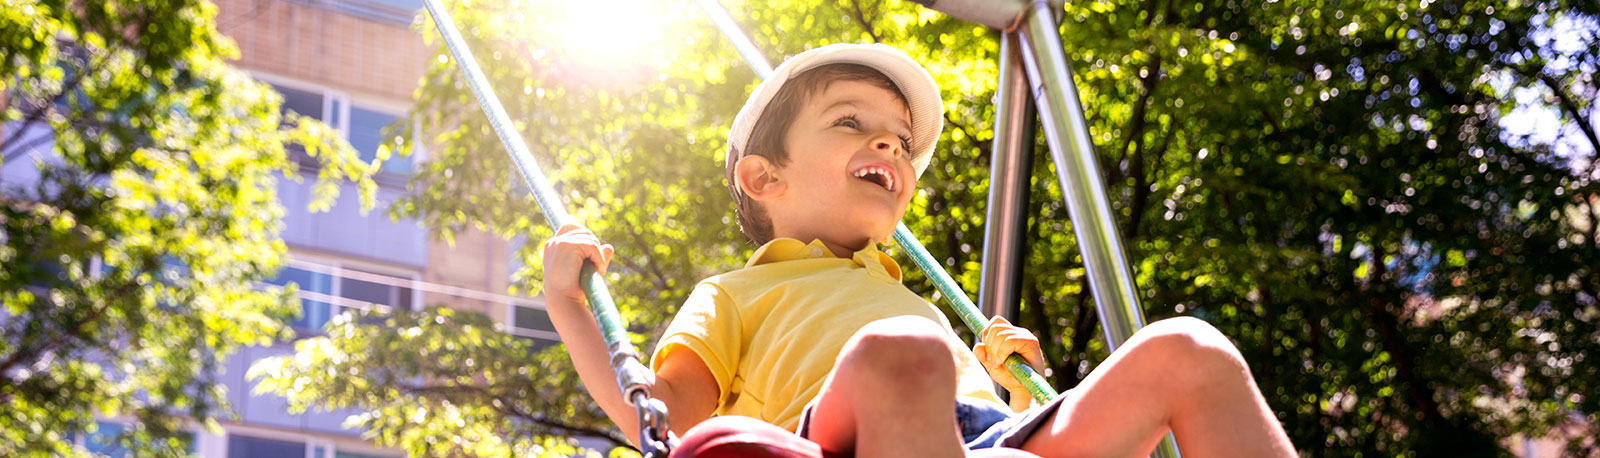 delighted young boy on swing (image from https://www.istockphoto.com/ca/photo/happy-kids-playing-outdoor-at-the-park-gm967909366-263977324)